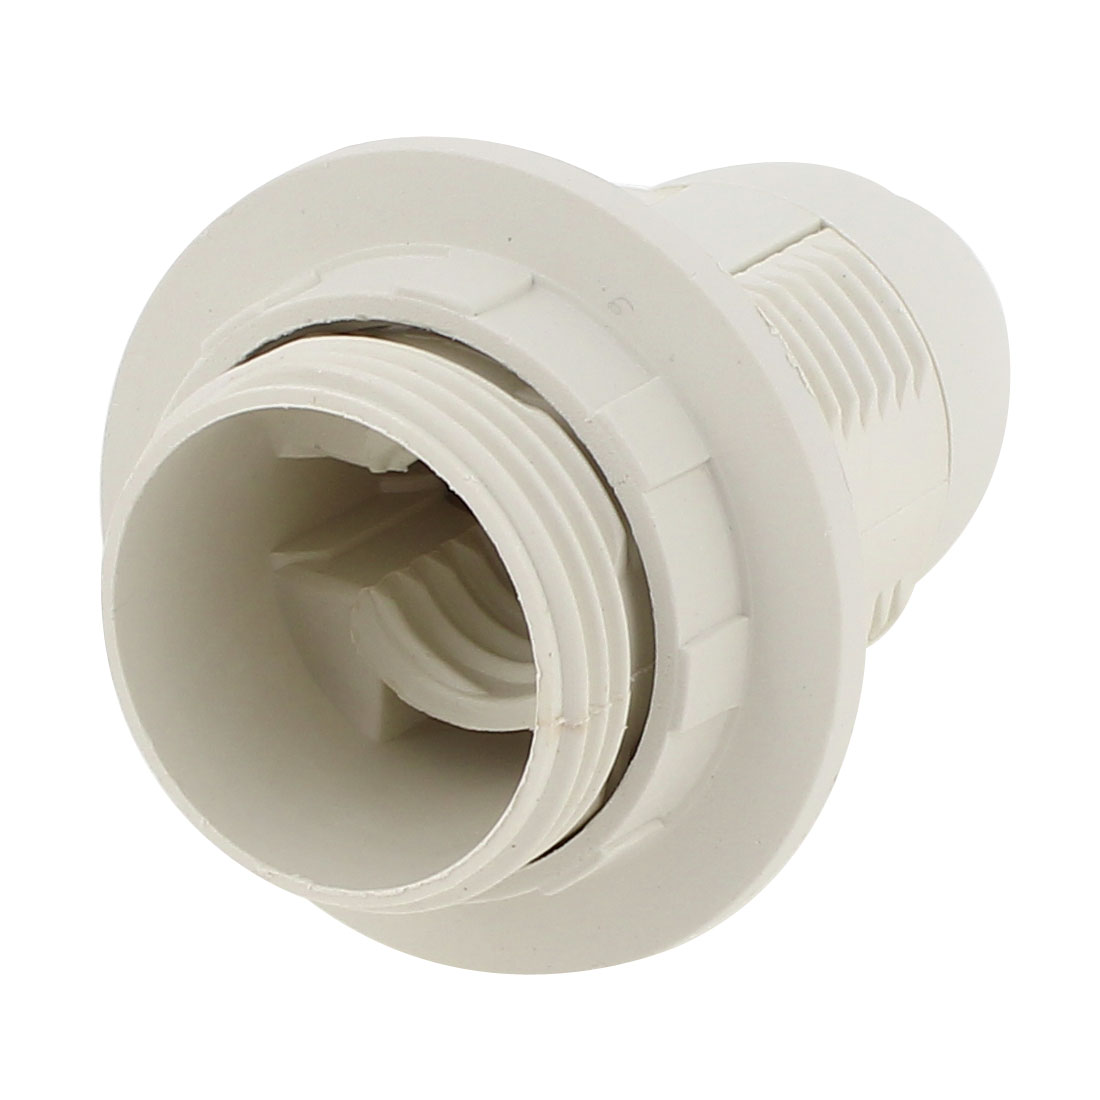 White E14 Bulb Base Holder Screw Lamp Socket Adapter AC 110V-220V